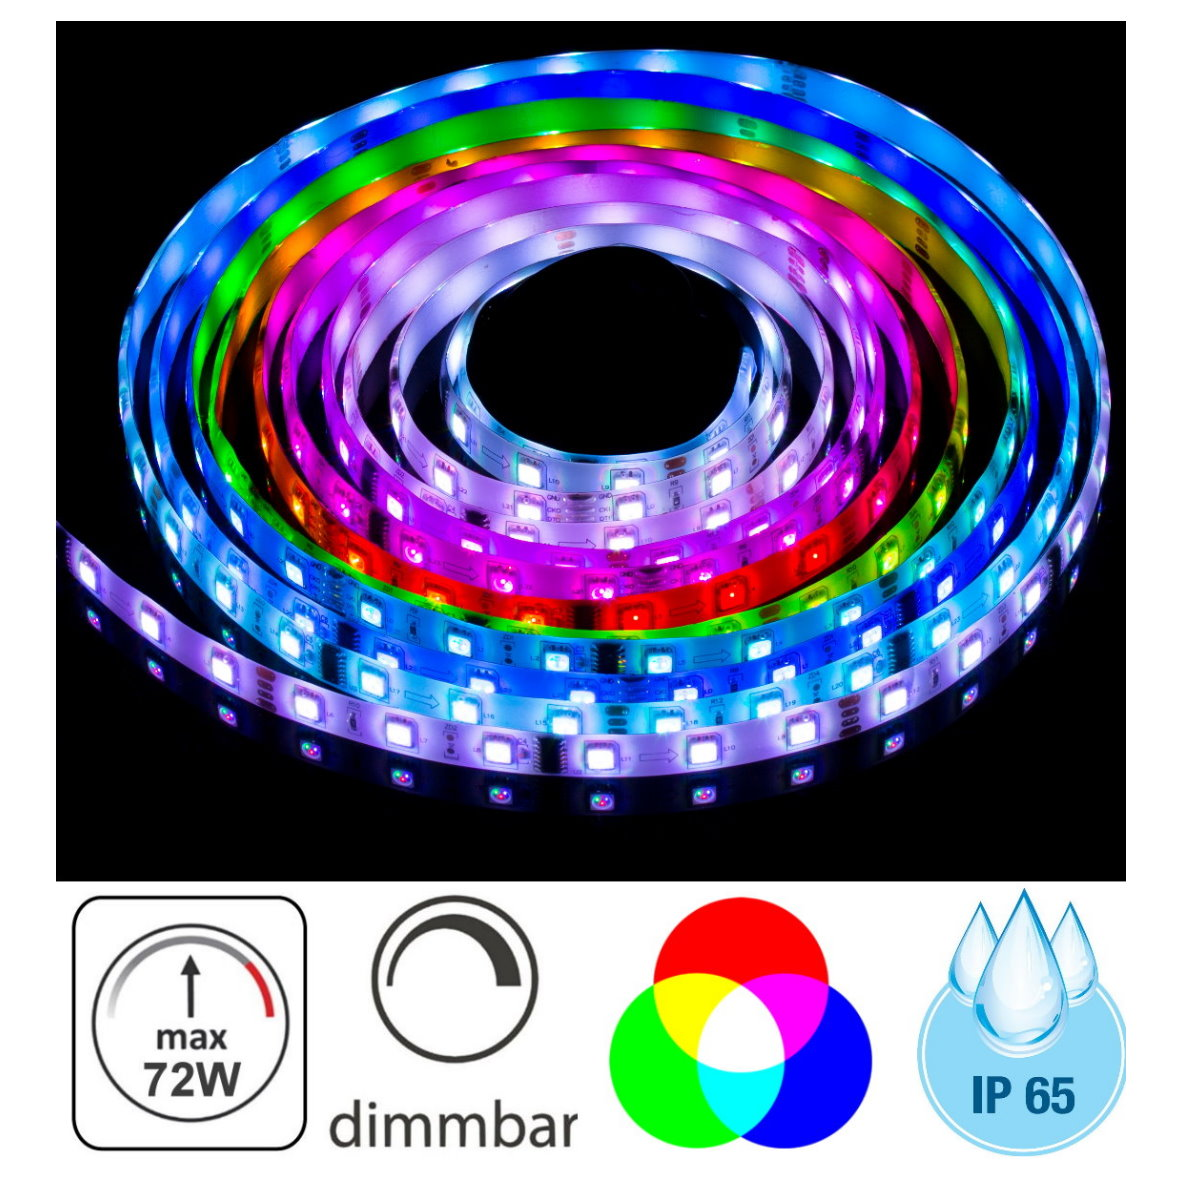 5 98 eur m 5m rgb led lichtband 72w ip65 dimmbar 300x. Black Bedroom Furniture Sets. Home Design Ideas